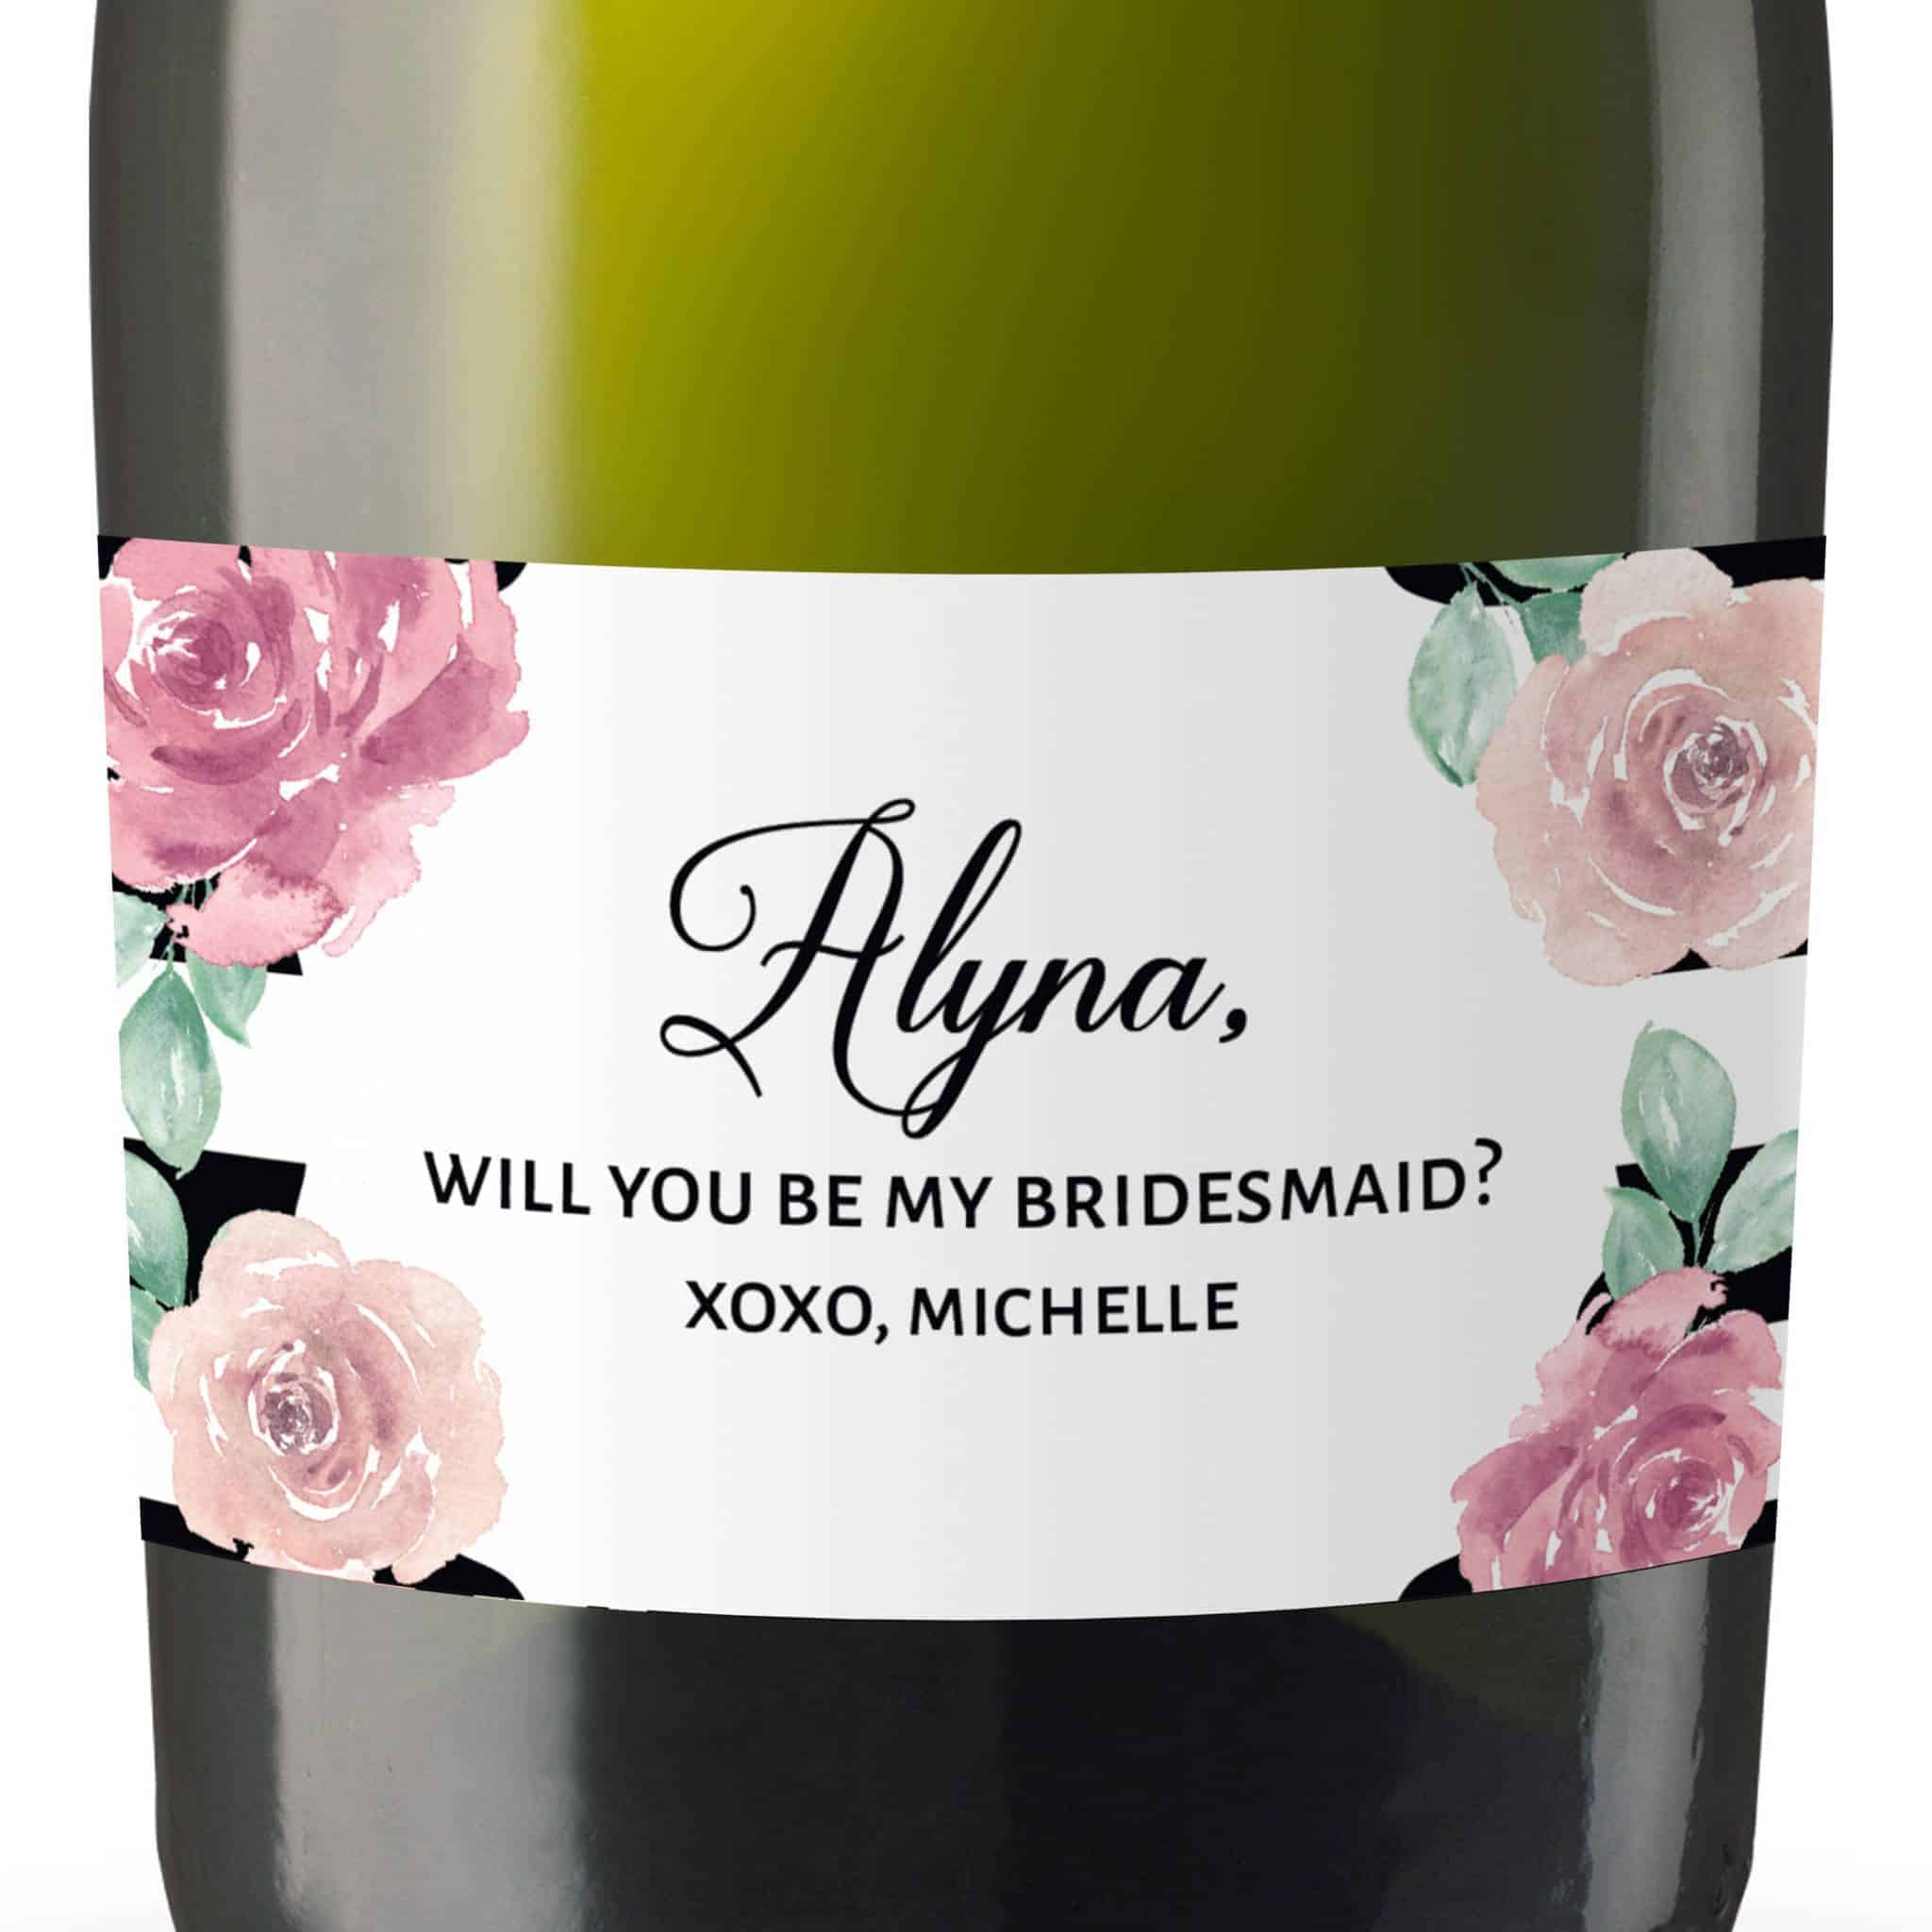 Floral Art Mini Champagne Wine Bottle Label Sticker,Bridal Shower,Will You Be My Bridesmaid,Matron&Maid of Honor Proposal Gift,Custom #mn152